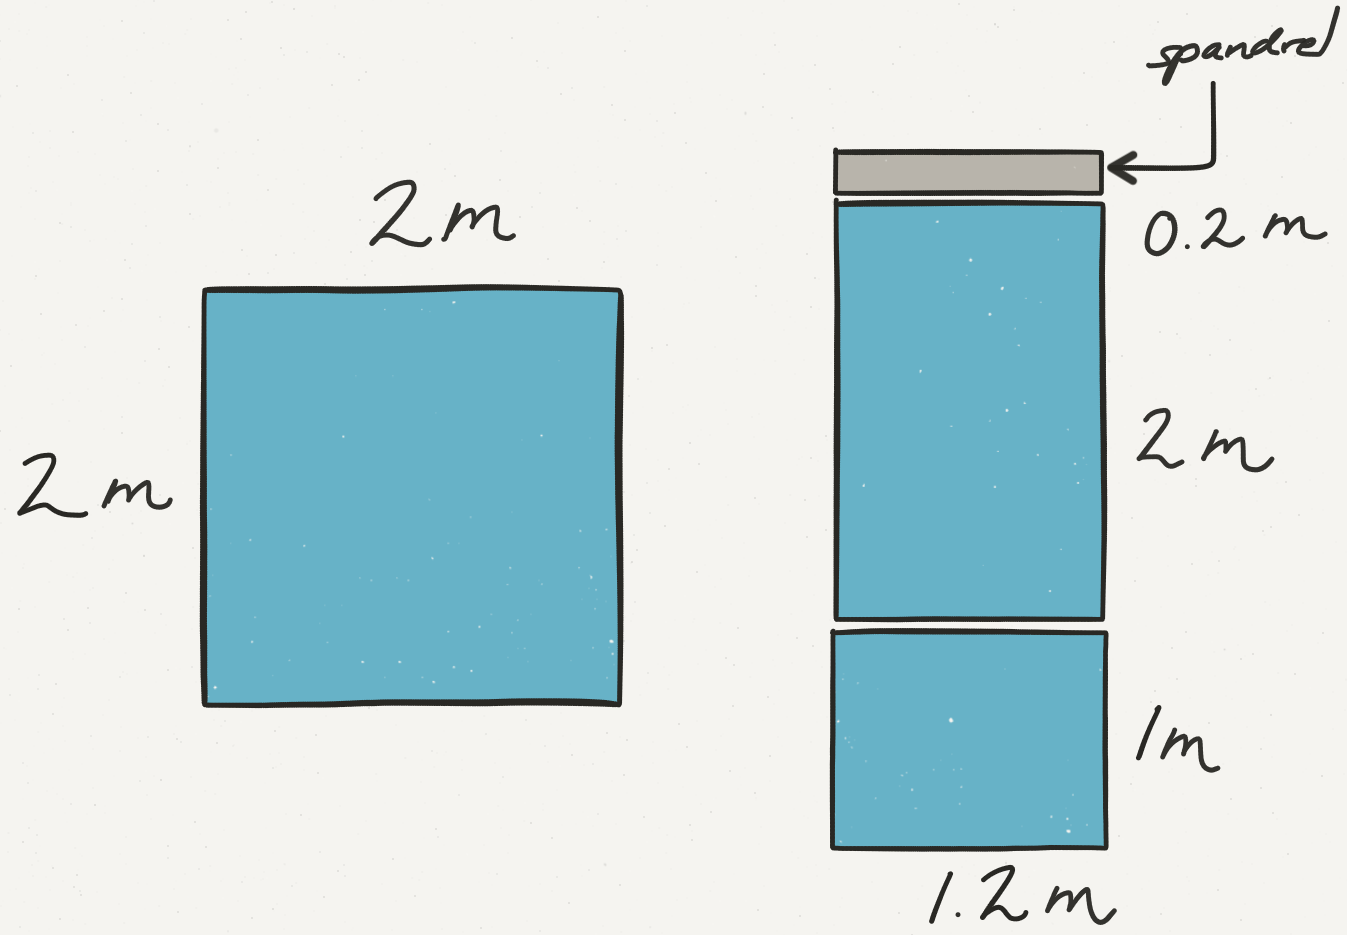 Window sizes with spandrel